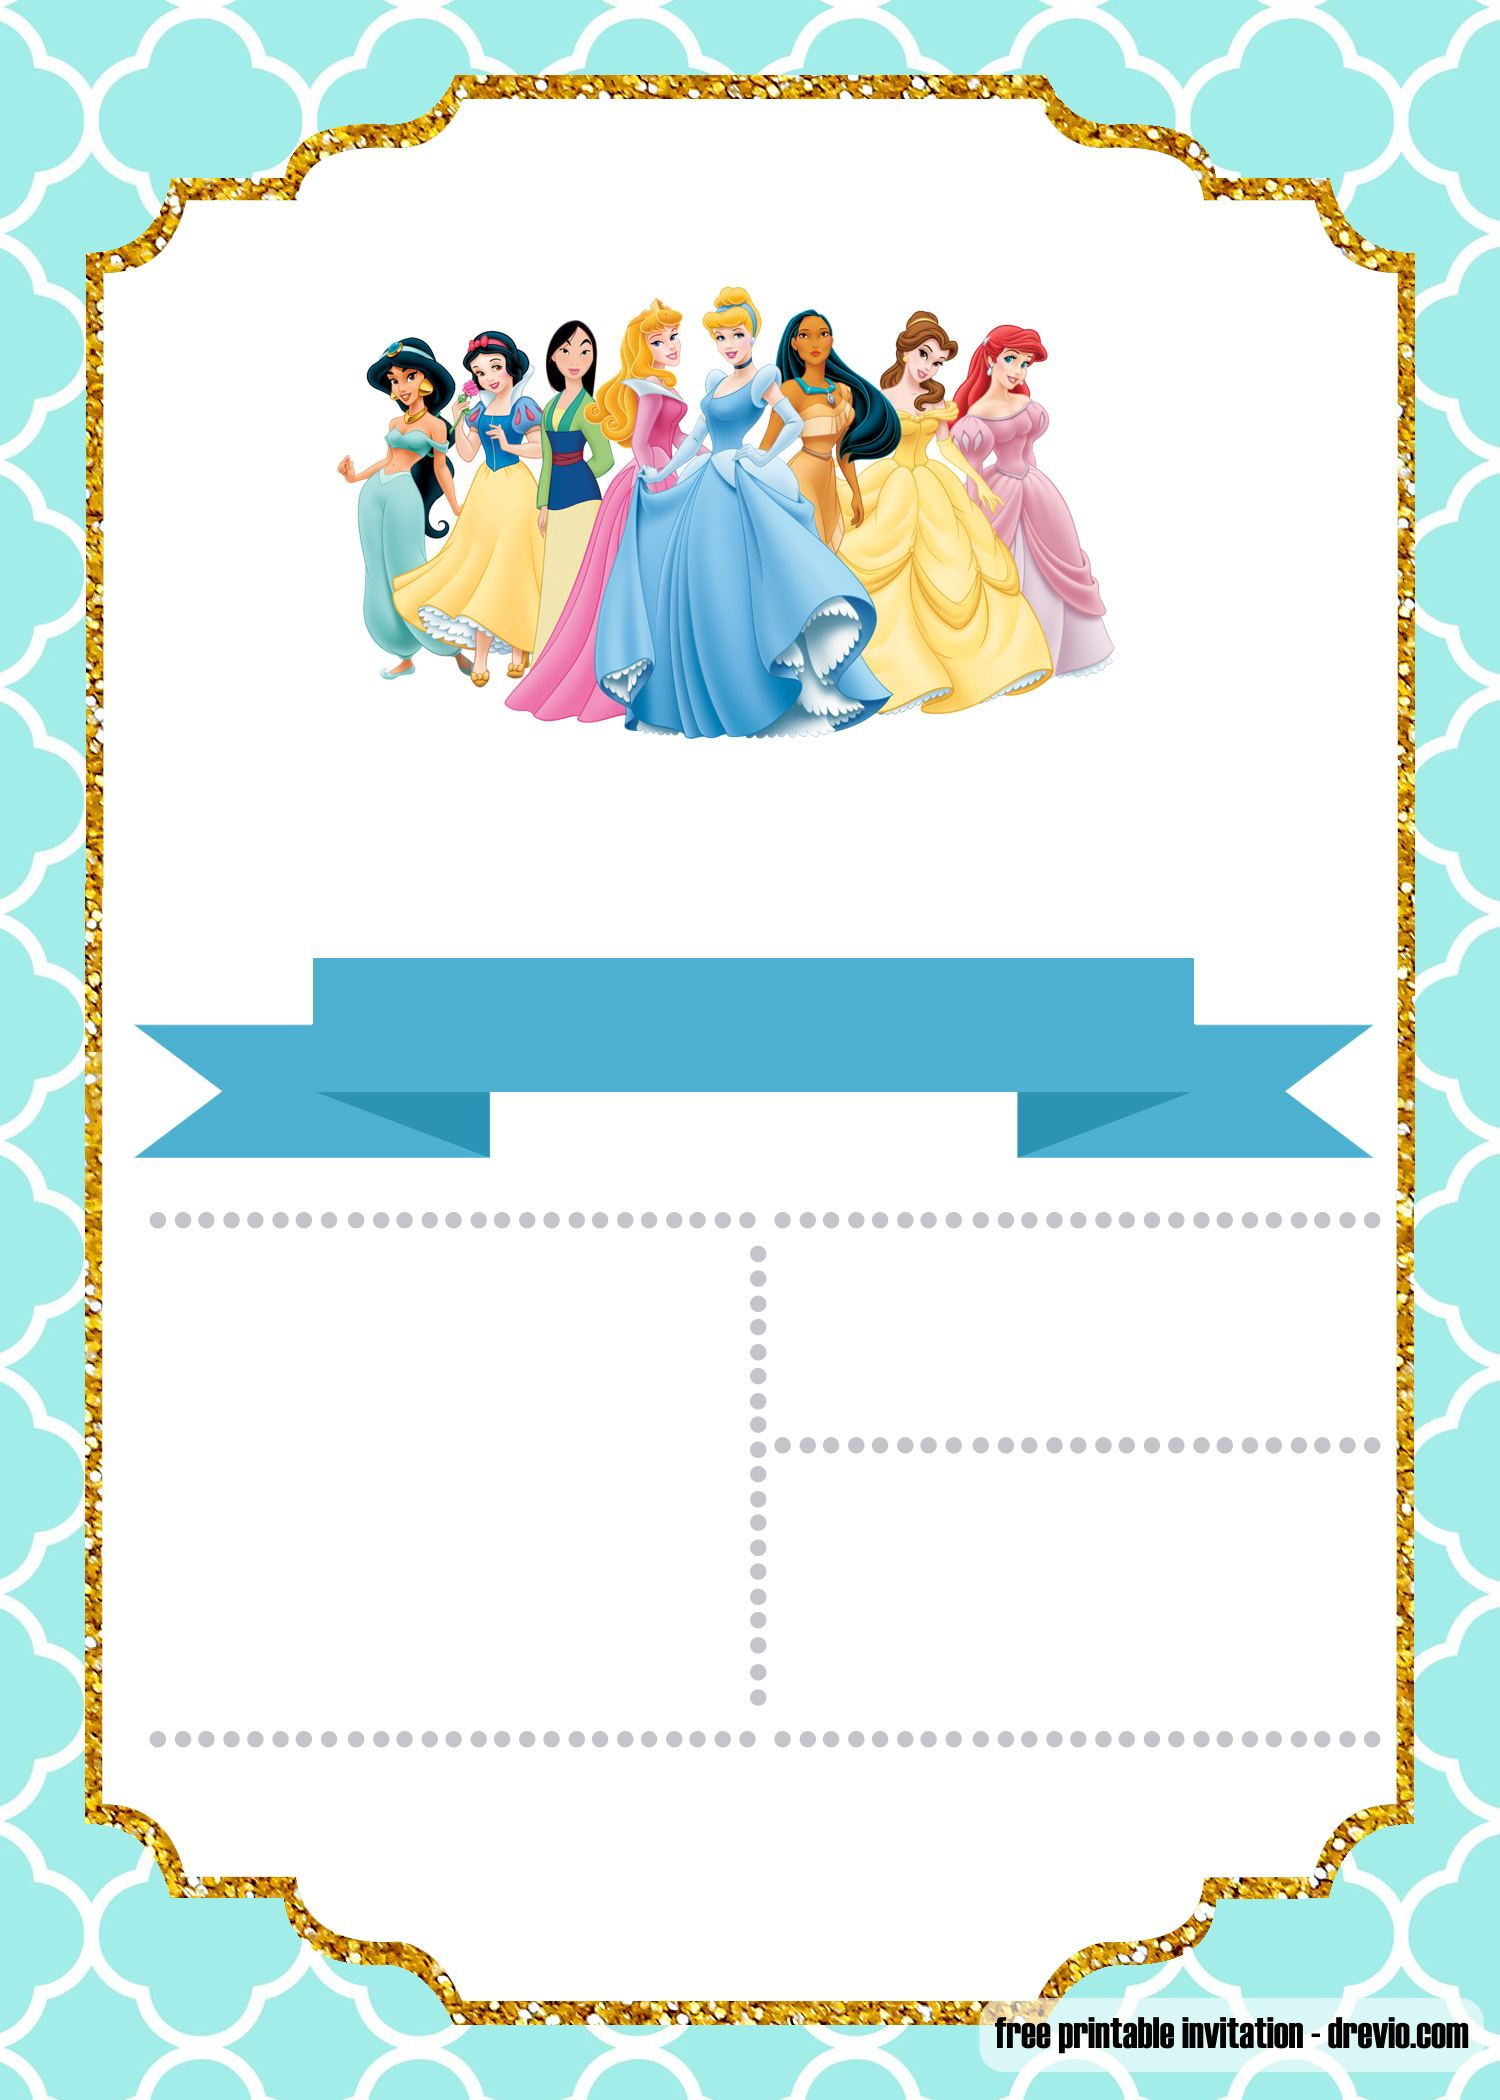 free disney princess invitation template for your little girl u0026 39 s birthday  u2014 free invitation